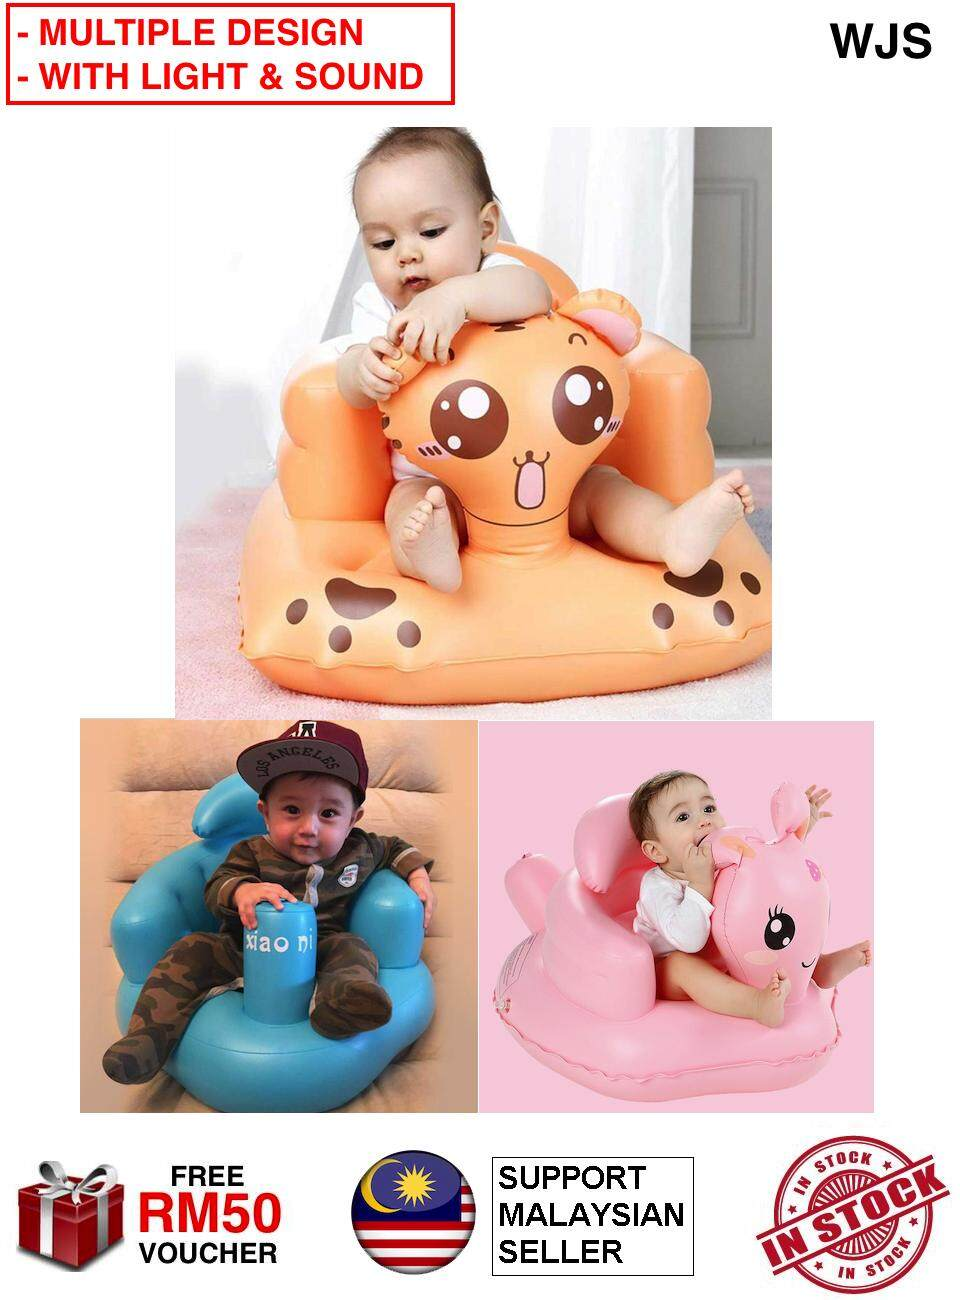 (MULTIPLE DESIGN & COLORS) WJS Baby Inflatable Sofa Chair Baby Sofa Baby Seat Baby Chair Dining Bathroom Children Toddler Learn Sitting Portable Seat Light and Sound OPTIONAL [FREE RM 50 VOUCHER]